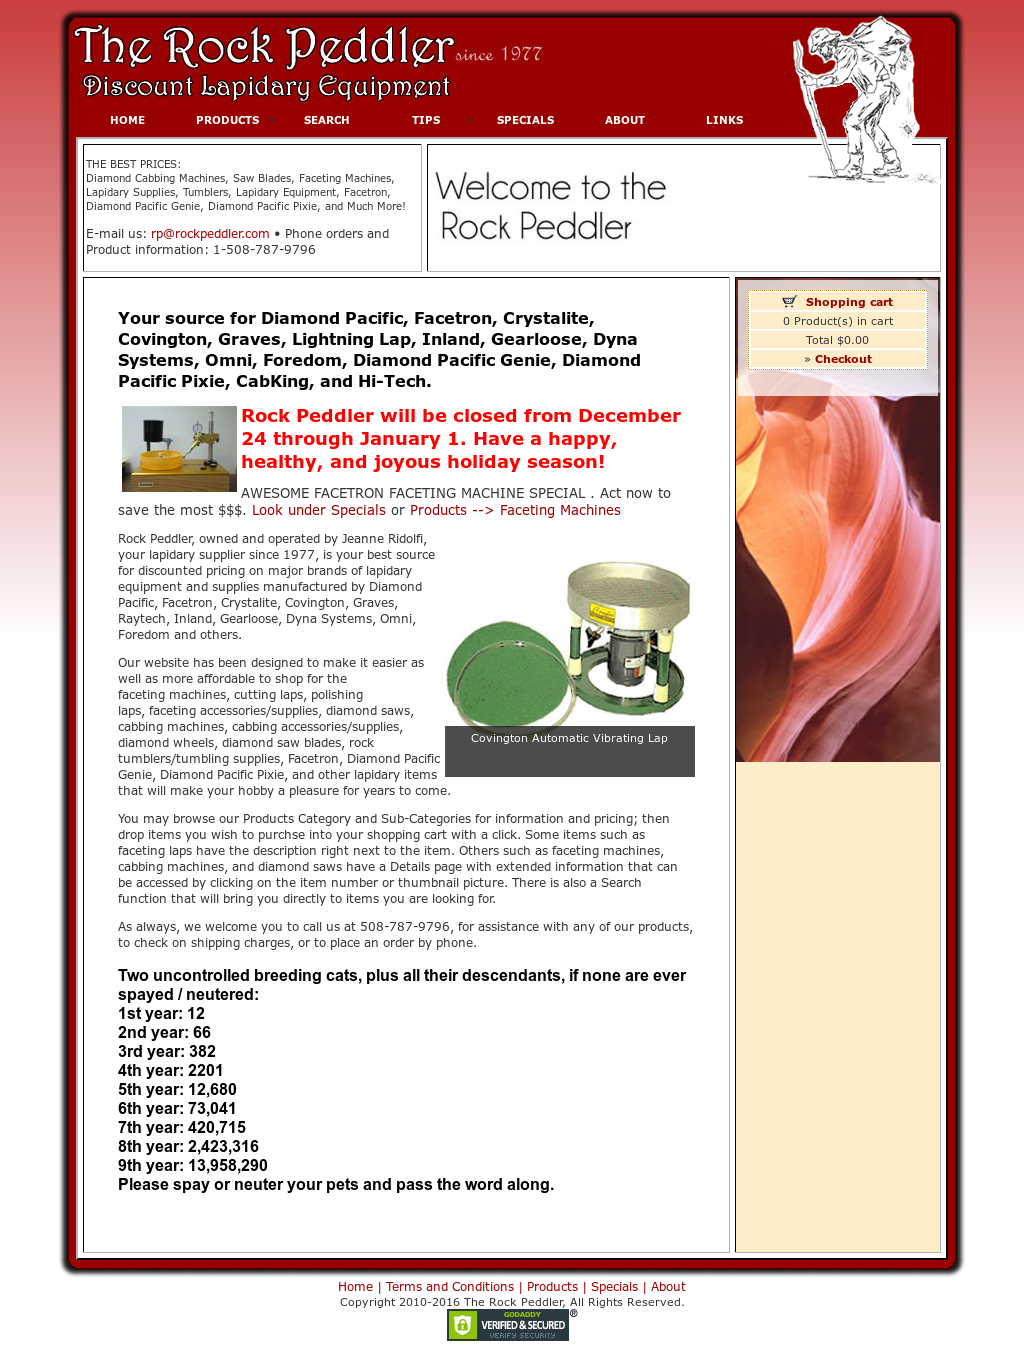 The Rock Peddler Competitors, Revenue and Employees - Owler